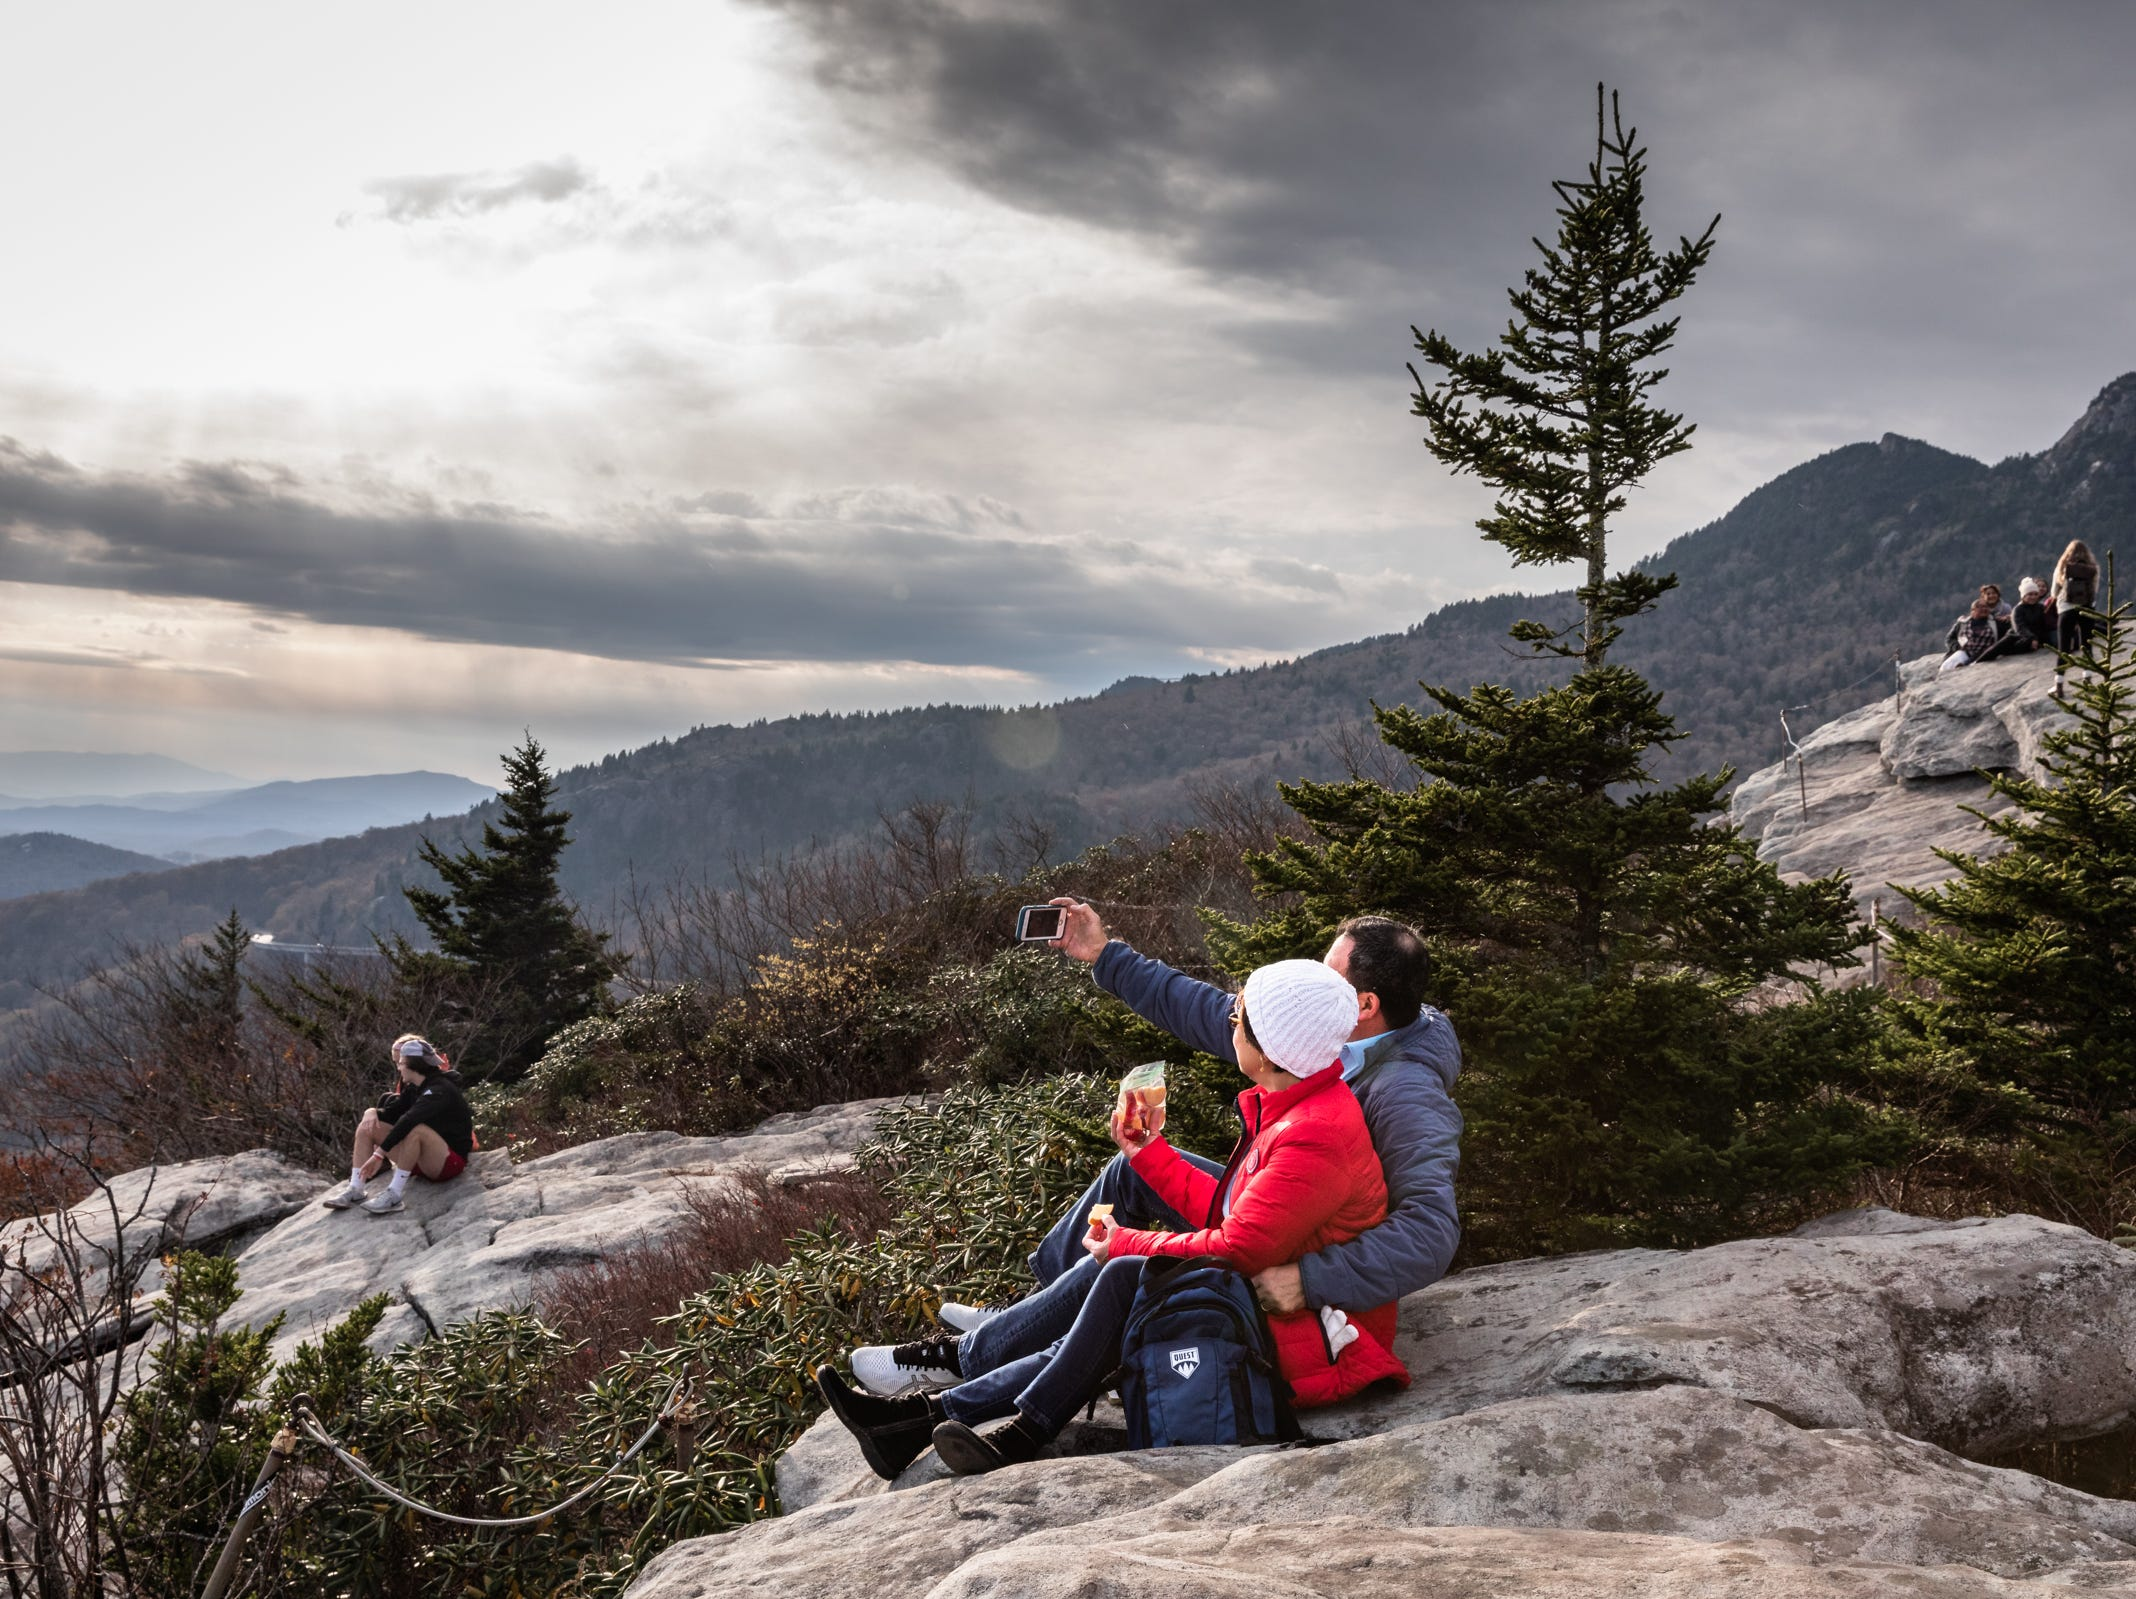 A couple takes a cell phone photograph together while sitting on a rocky outcropping at the Rough Ridge overlook on the Blue Ridge Parkway Oct. 28, 2018.